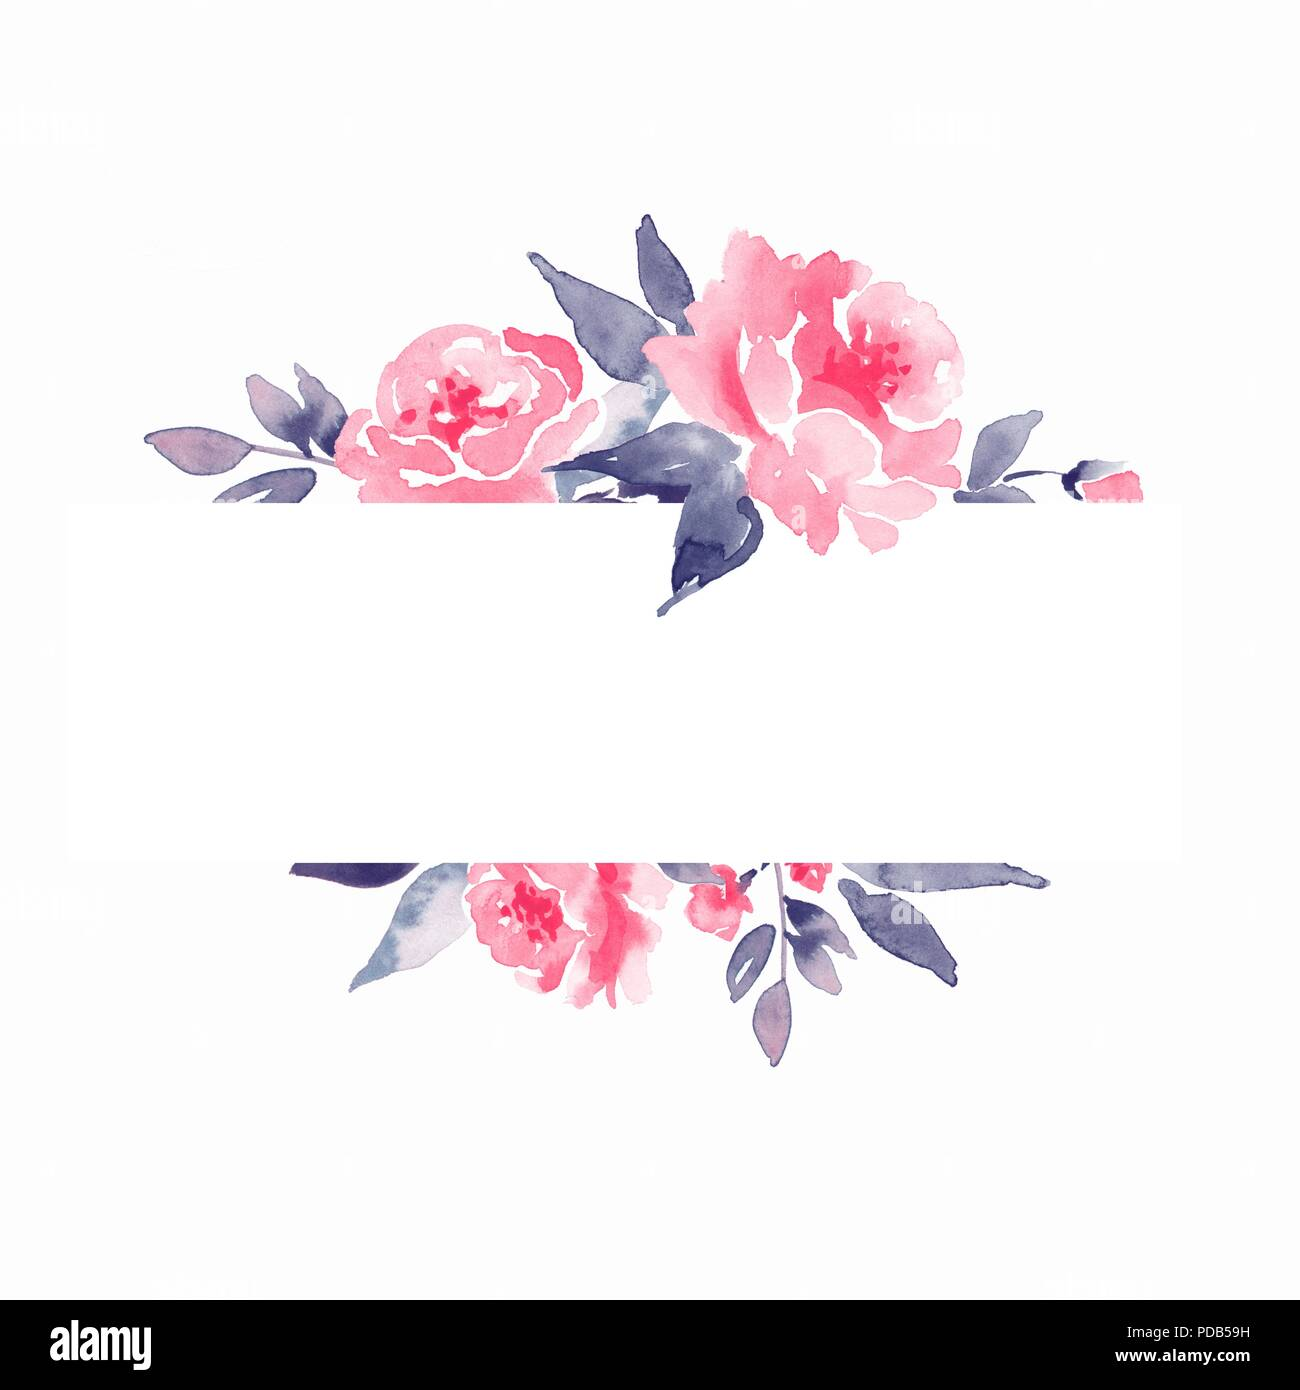 Watercolor Floral Frame Element For Design Background With